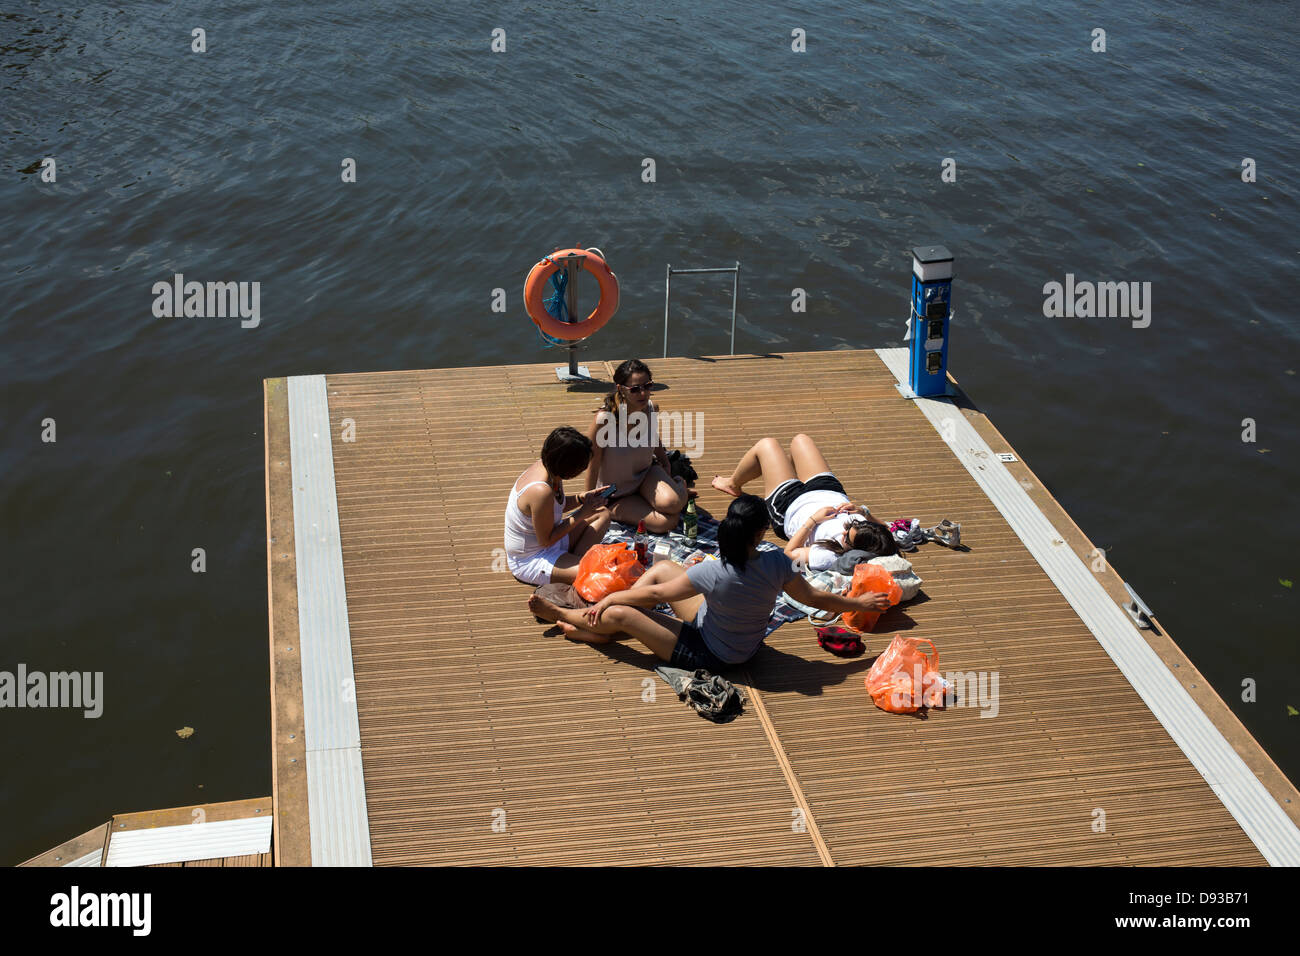 Bristol Harbourside Young people sunbathing picnicking on jetty of Avon river - Stock Image